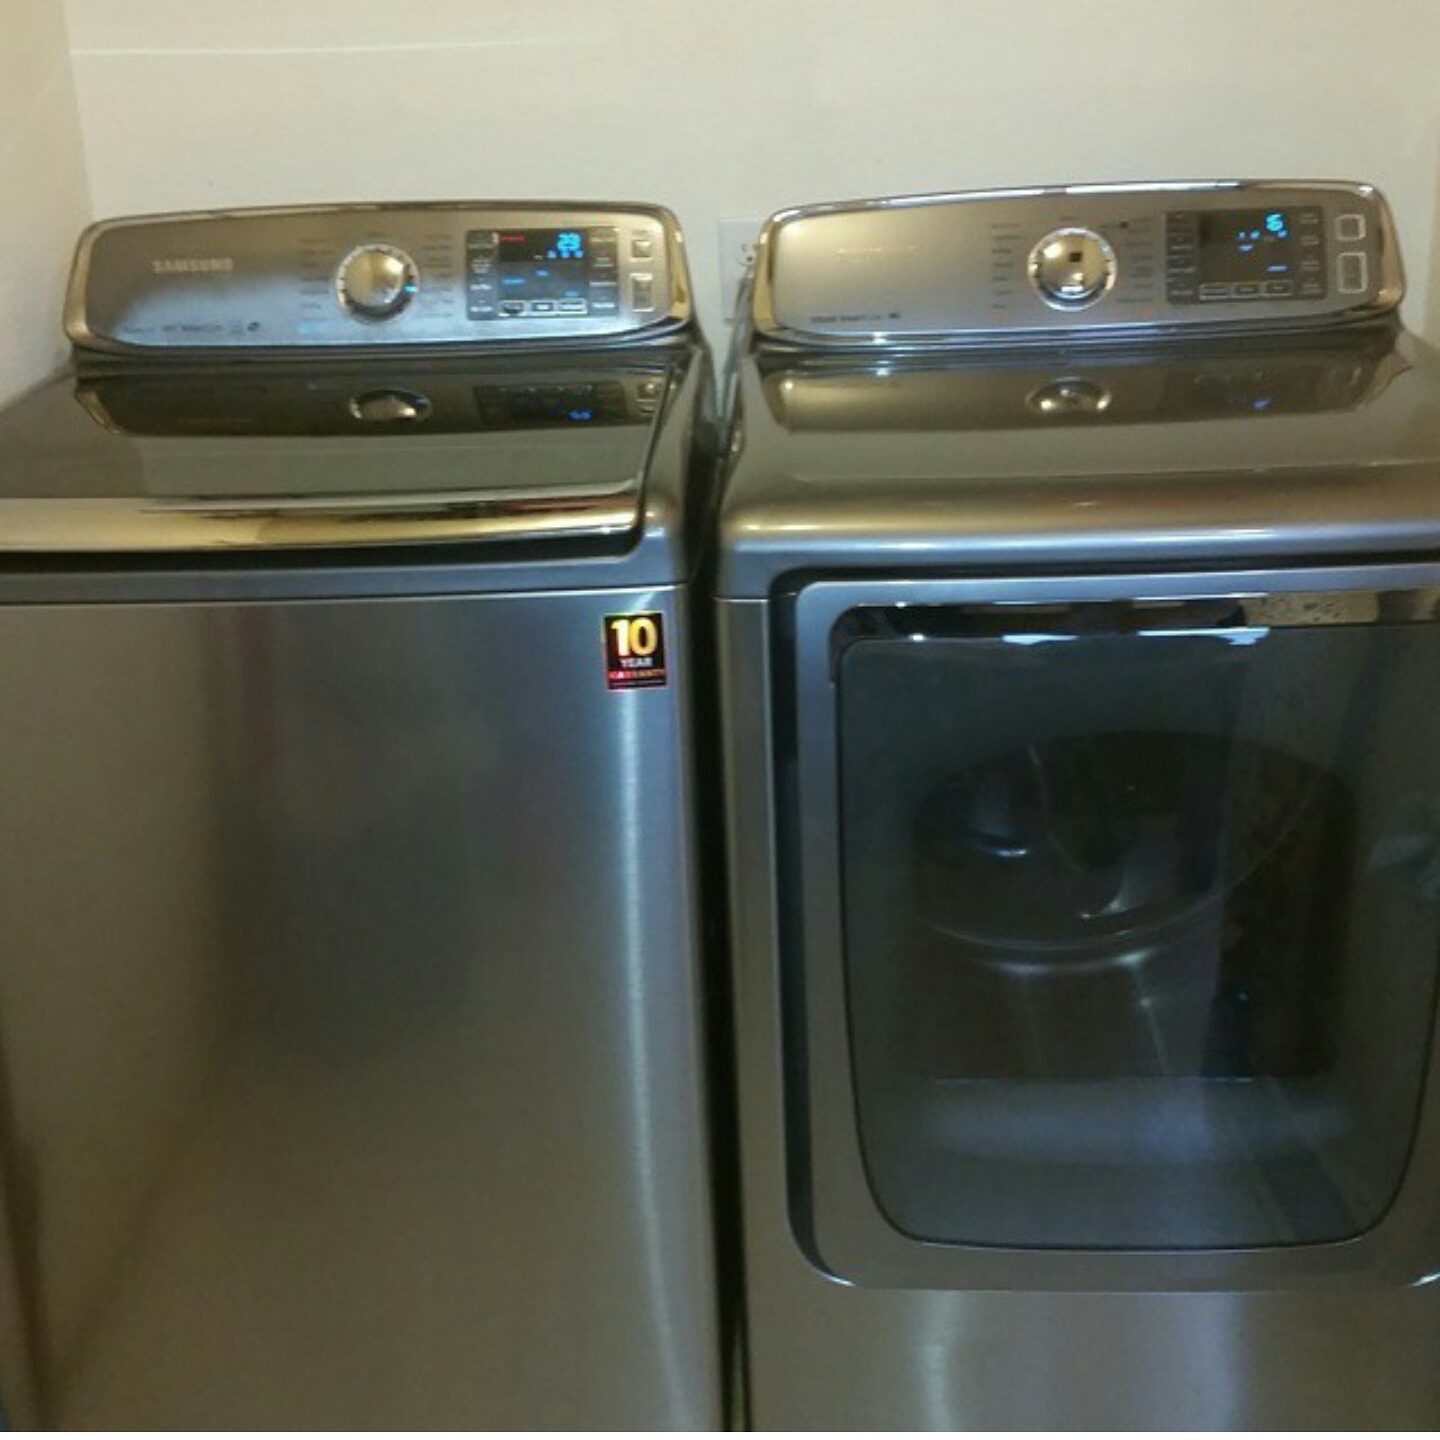 top 1 602 complaints and reviews about samsung washers